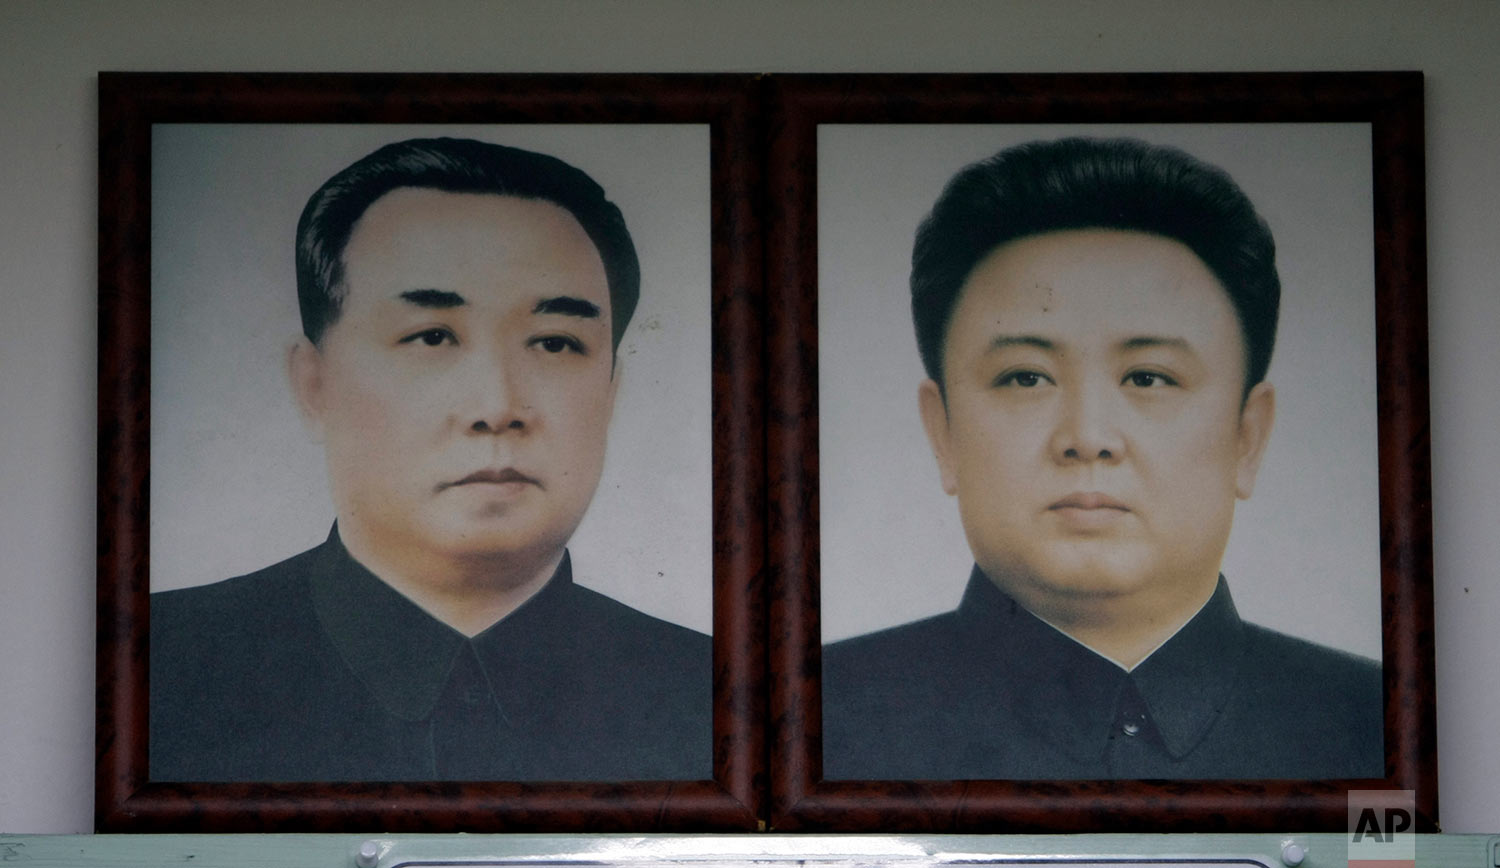 Portraits of North Korean leader Kim Jong Il, right, and his late father, Kim Il Sung, hang at a unification observation post in Paju, South Korea, near the border village of Panmunjom that has separated the two Koreas since the Korean War, on Jan. 22, 2010. (AP Photo/ Lee Jin-man)